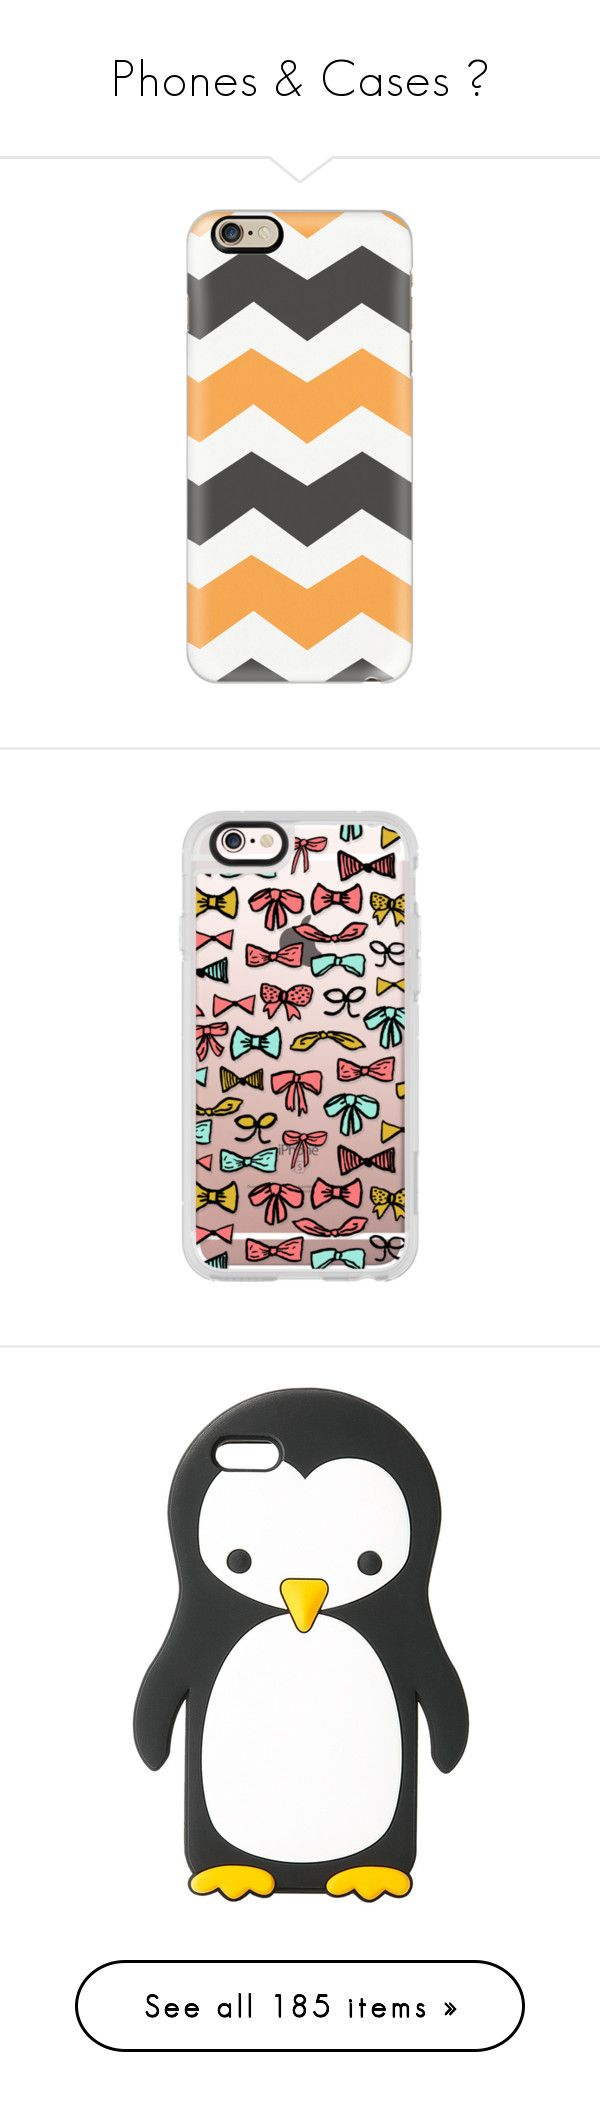 """""""Phones & Cases ♡"""" by foreverdreamt ❤ liked on Polyvore featuring accessories, tech accessories, iphone case, apple iphone case, iphone cases, iphone cover case, slim iphone case, iphone hard case, iphone cell phone cases and phone cases"""